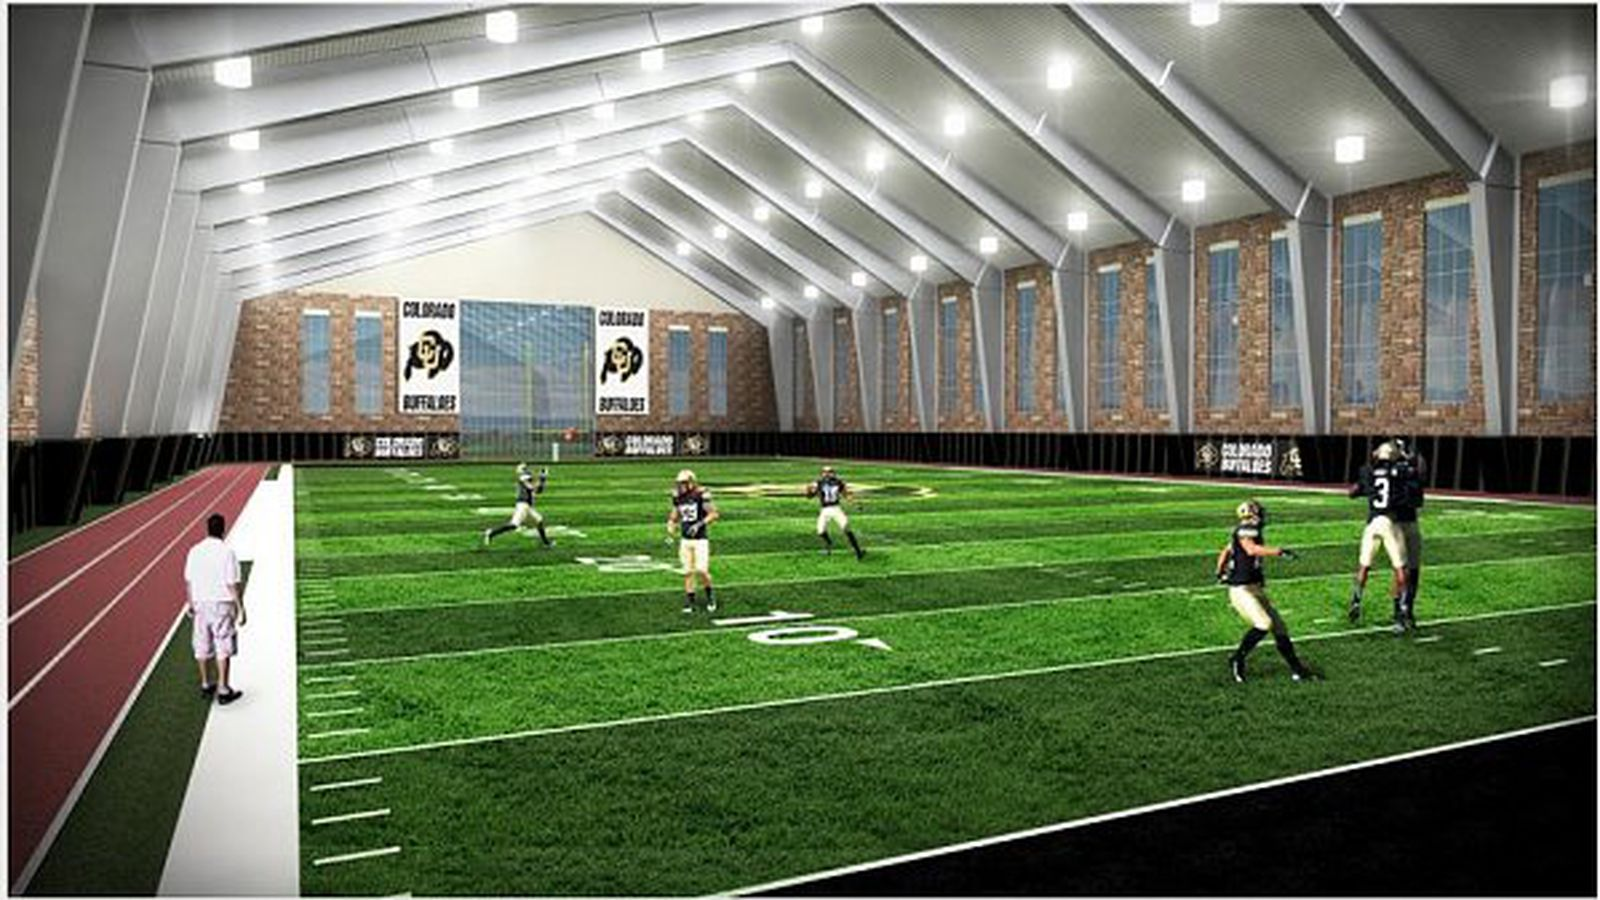 Digging into the new CU facilities project